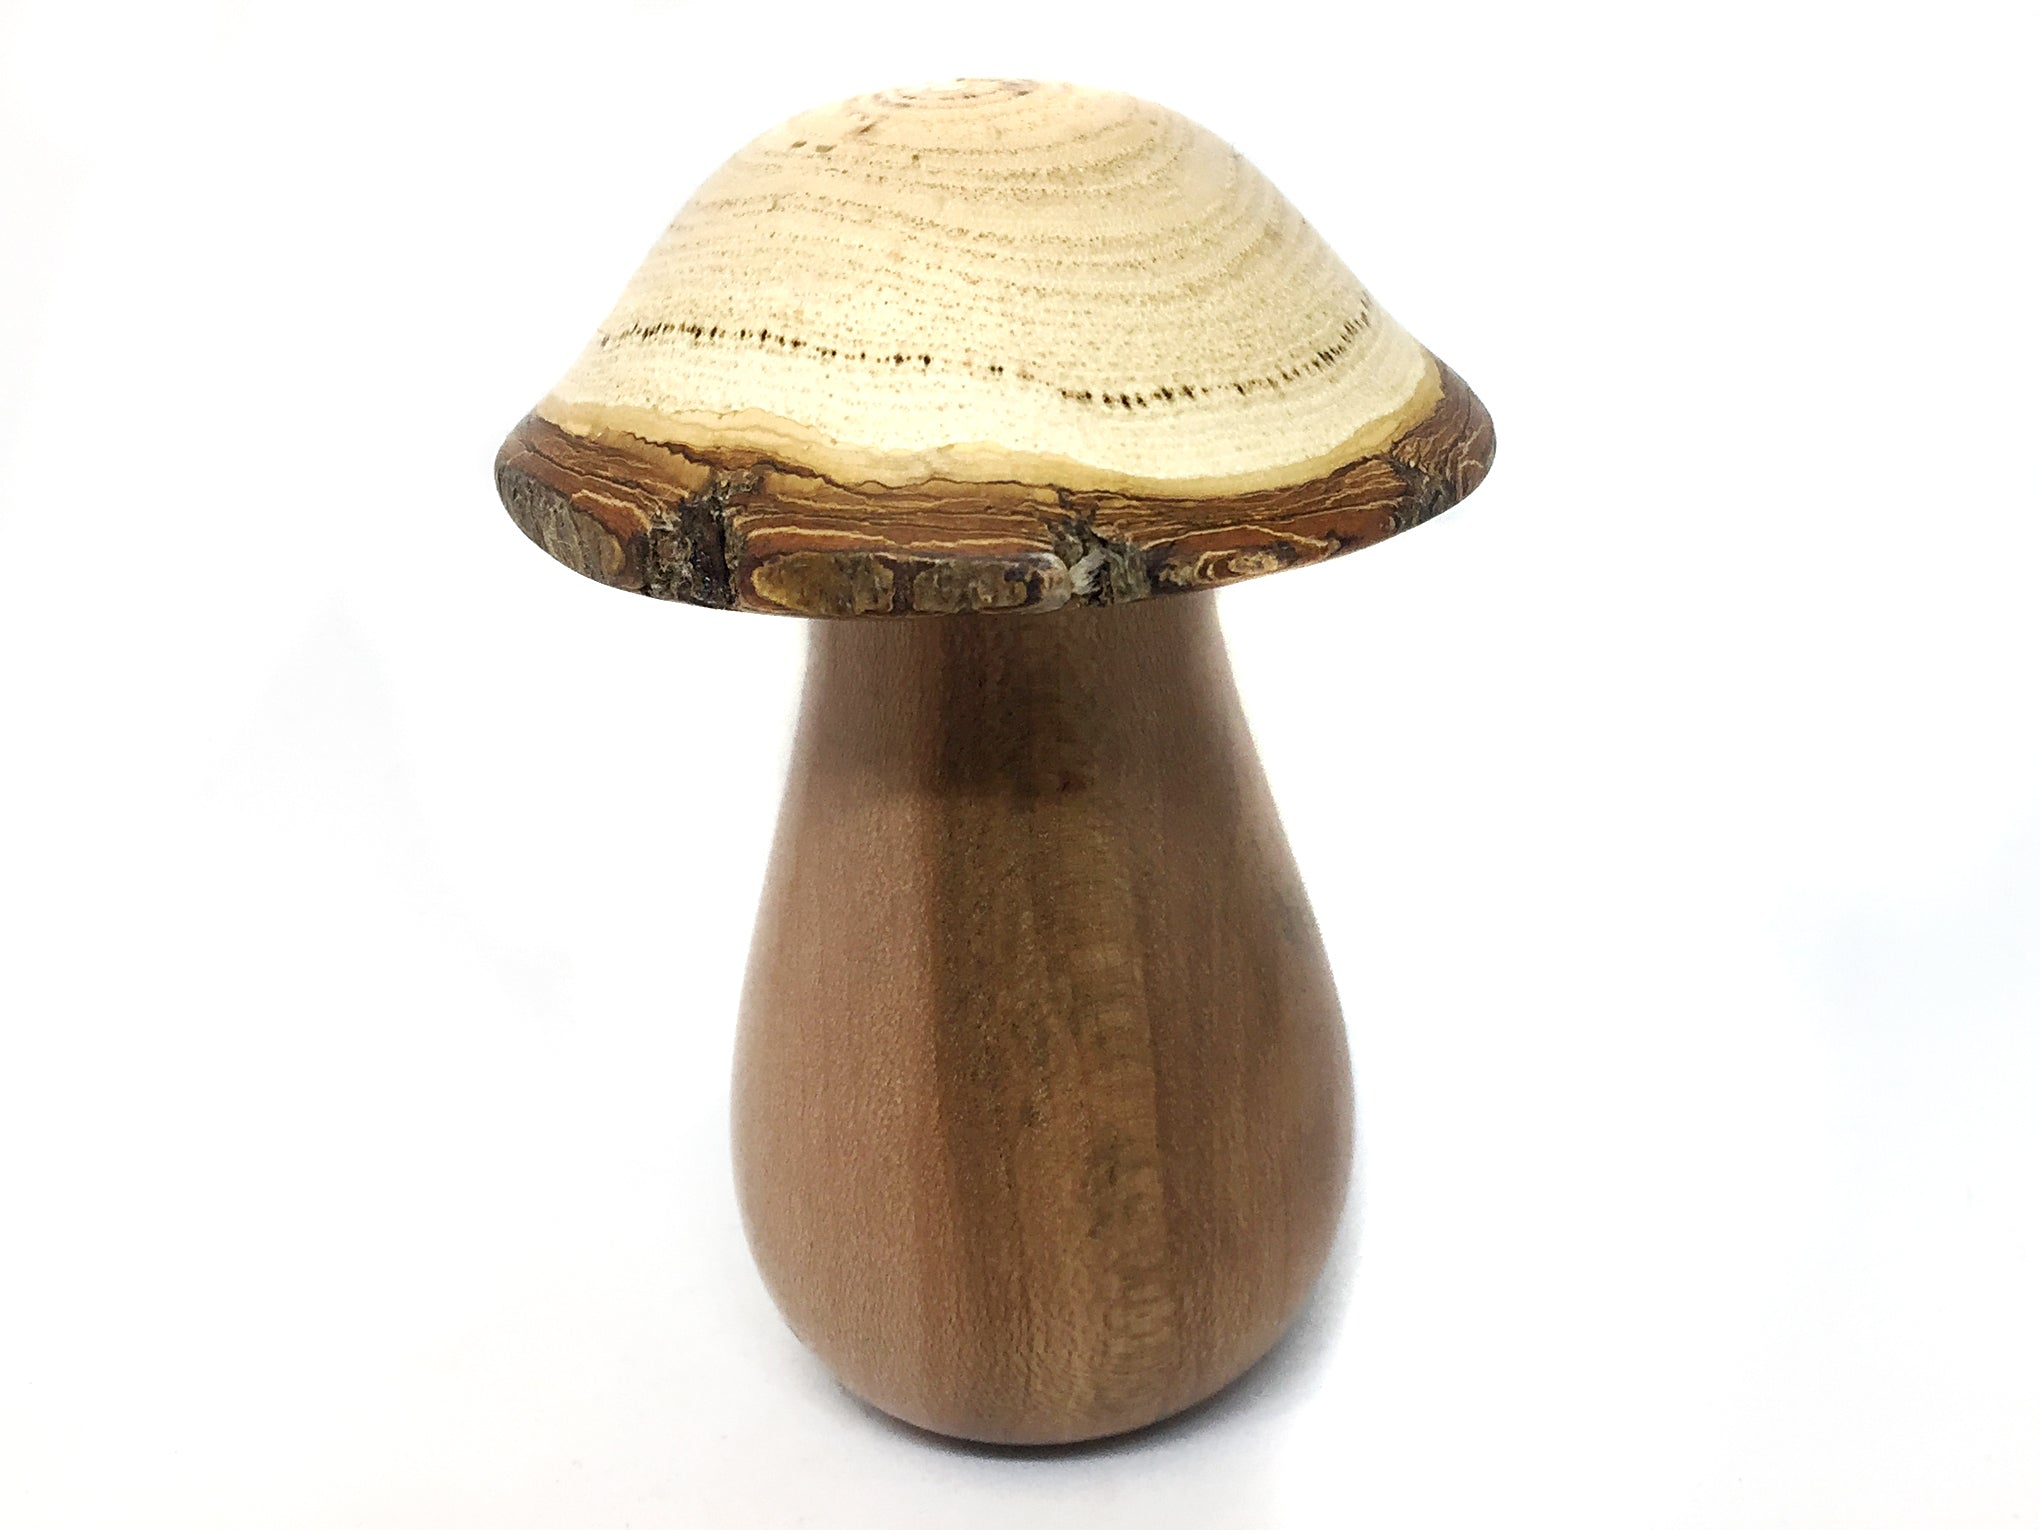 LV-4523  Golden Rain Tree cap with Dogwood stalk Wooden Mushroom Keepsake Box, Pill, Jewelry Box-SCREW CAP